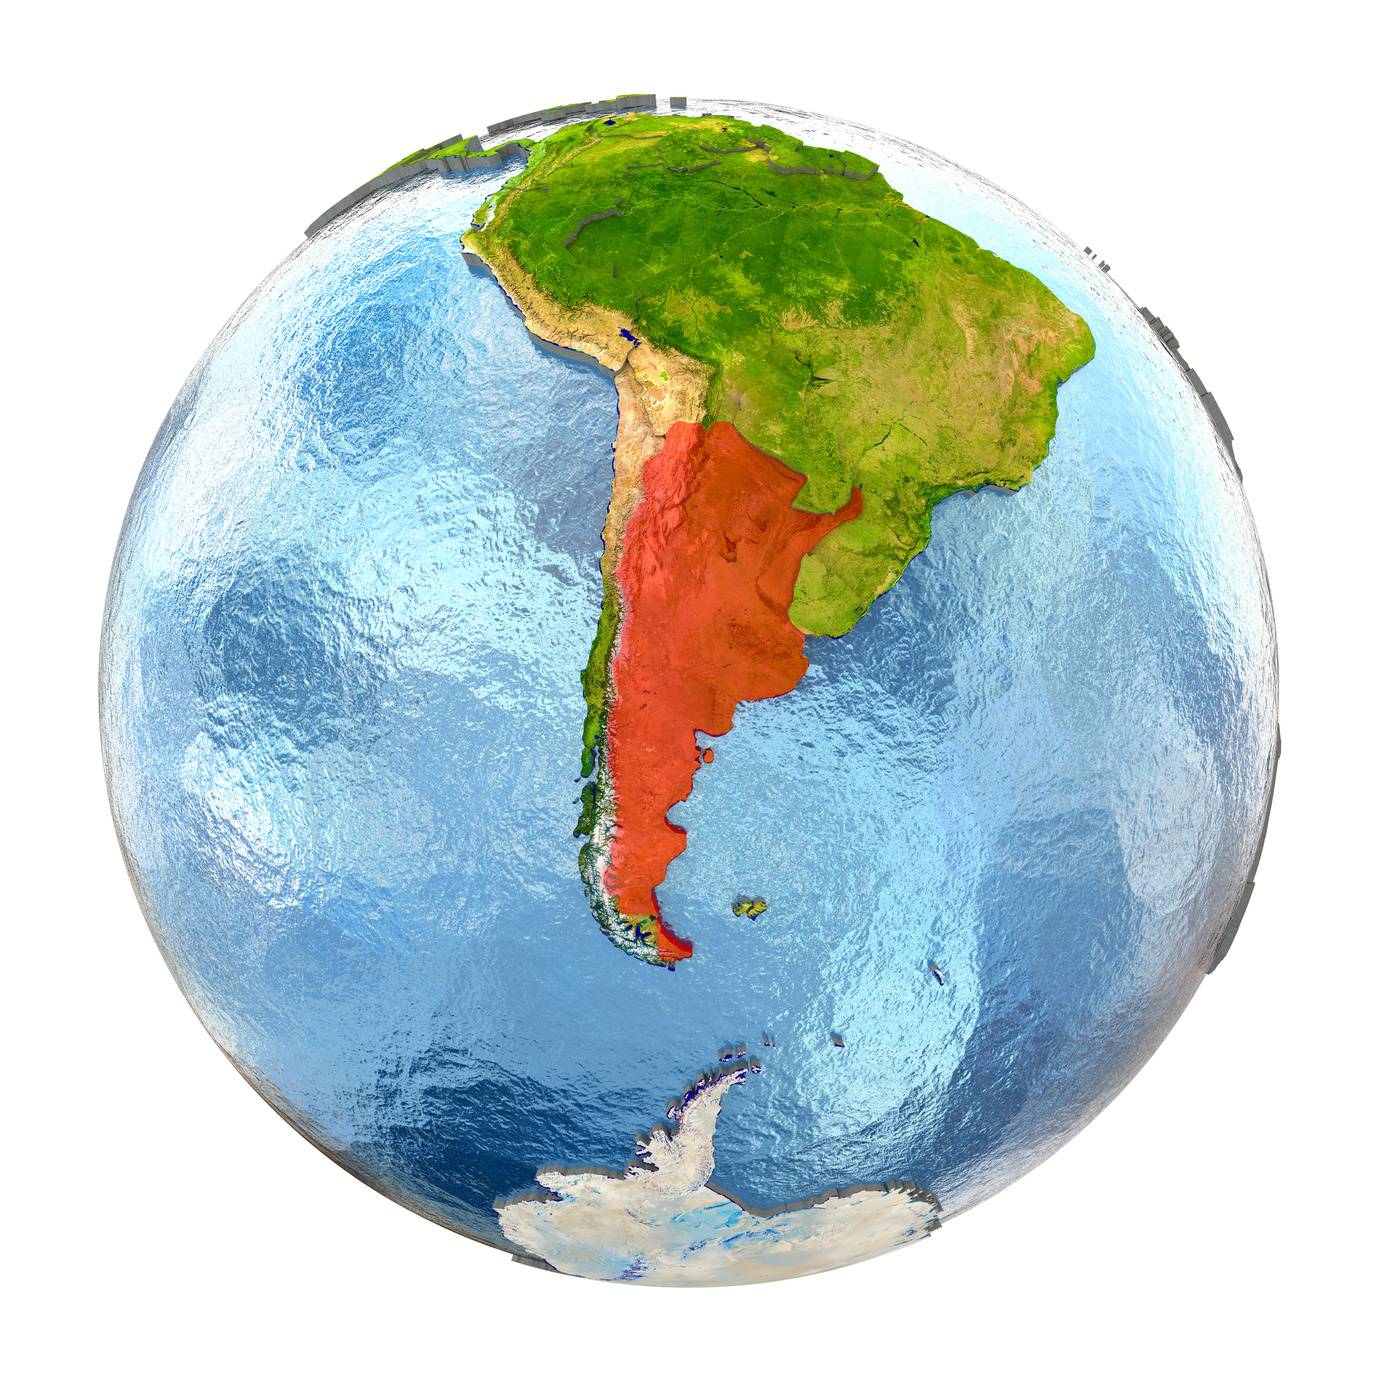 Globe with Argentina highlighted in red